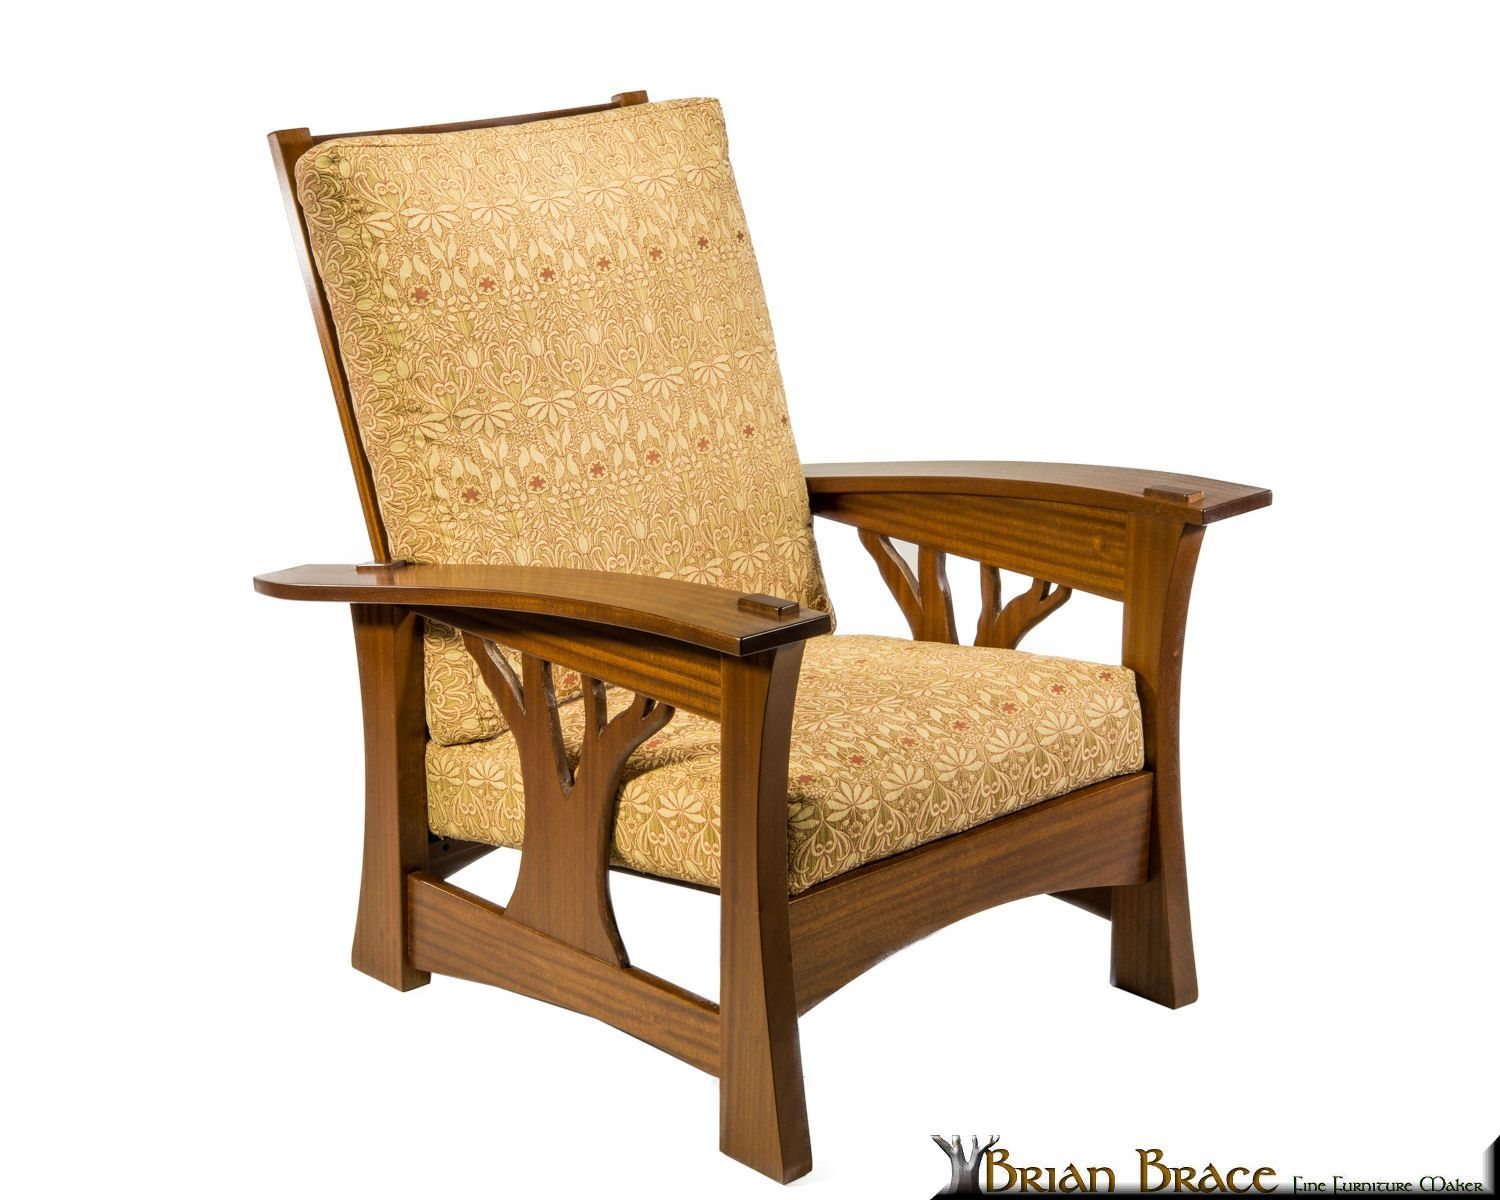 this arbor bow arm morris chair , inspired by the beautiful live